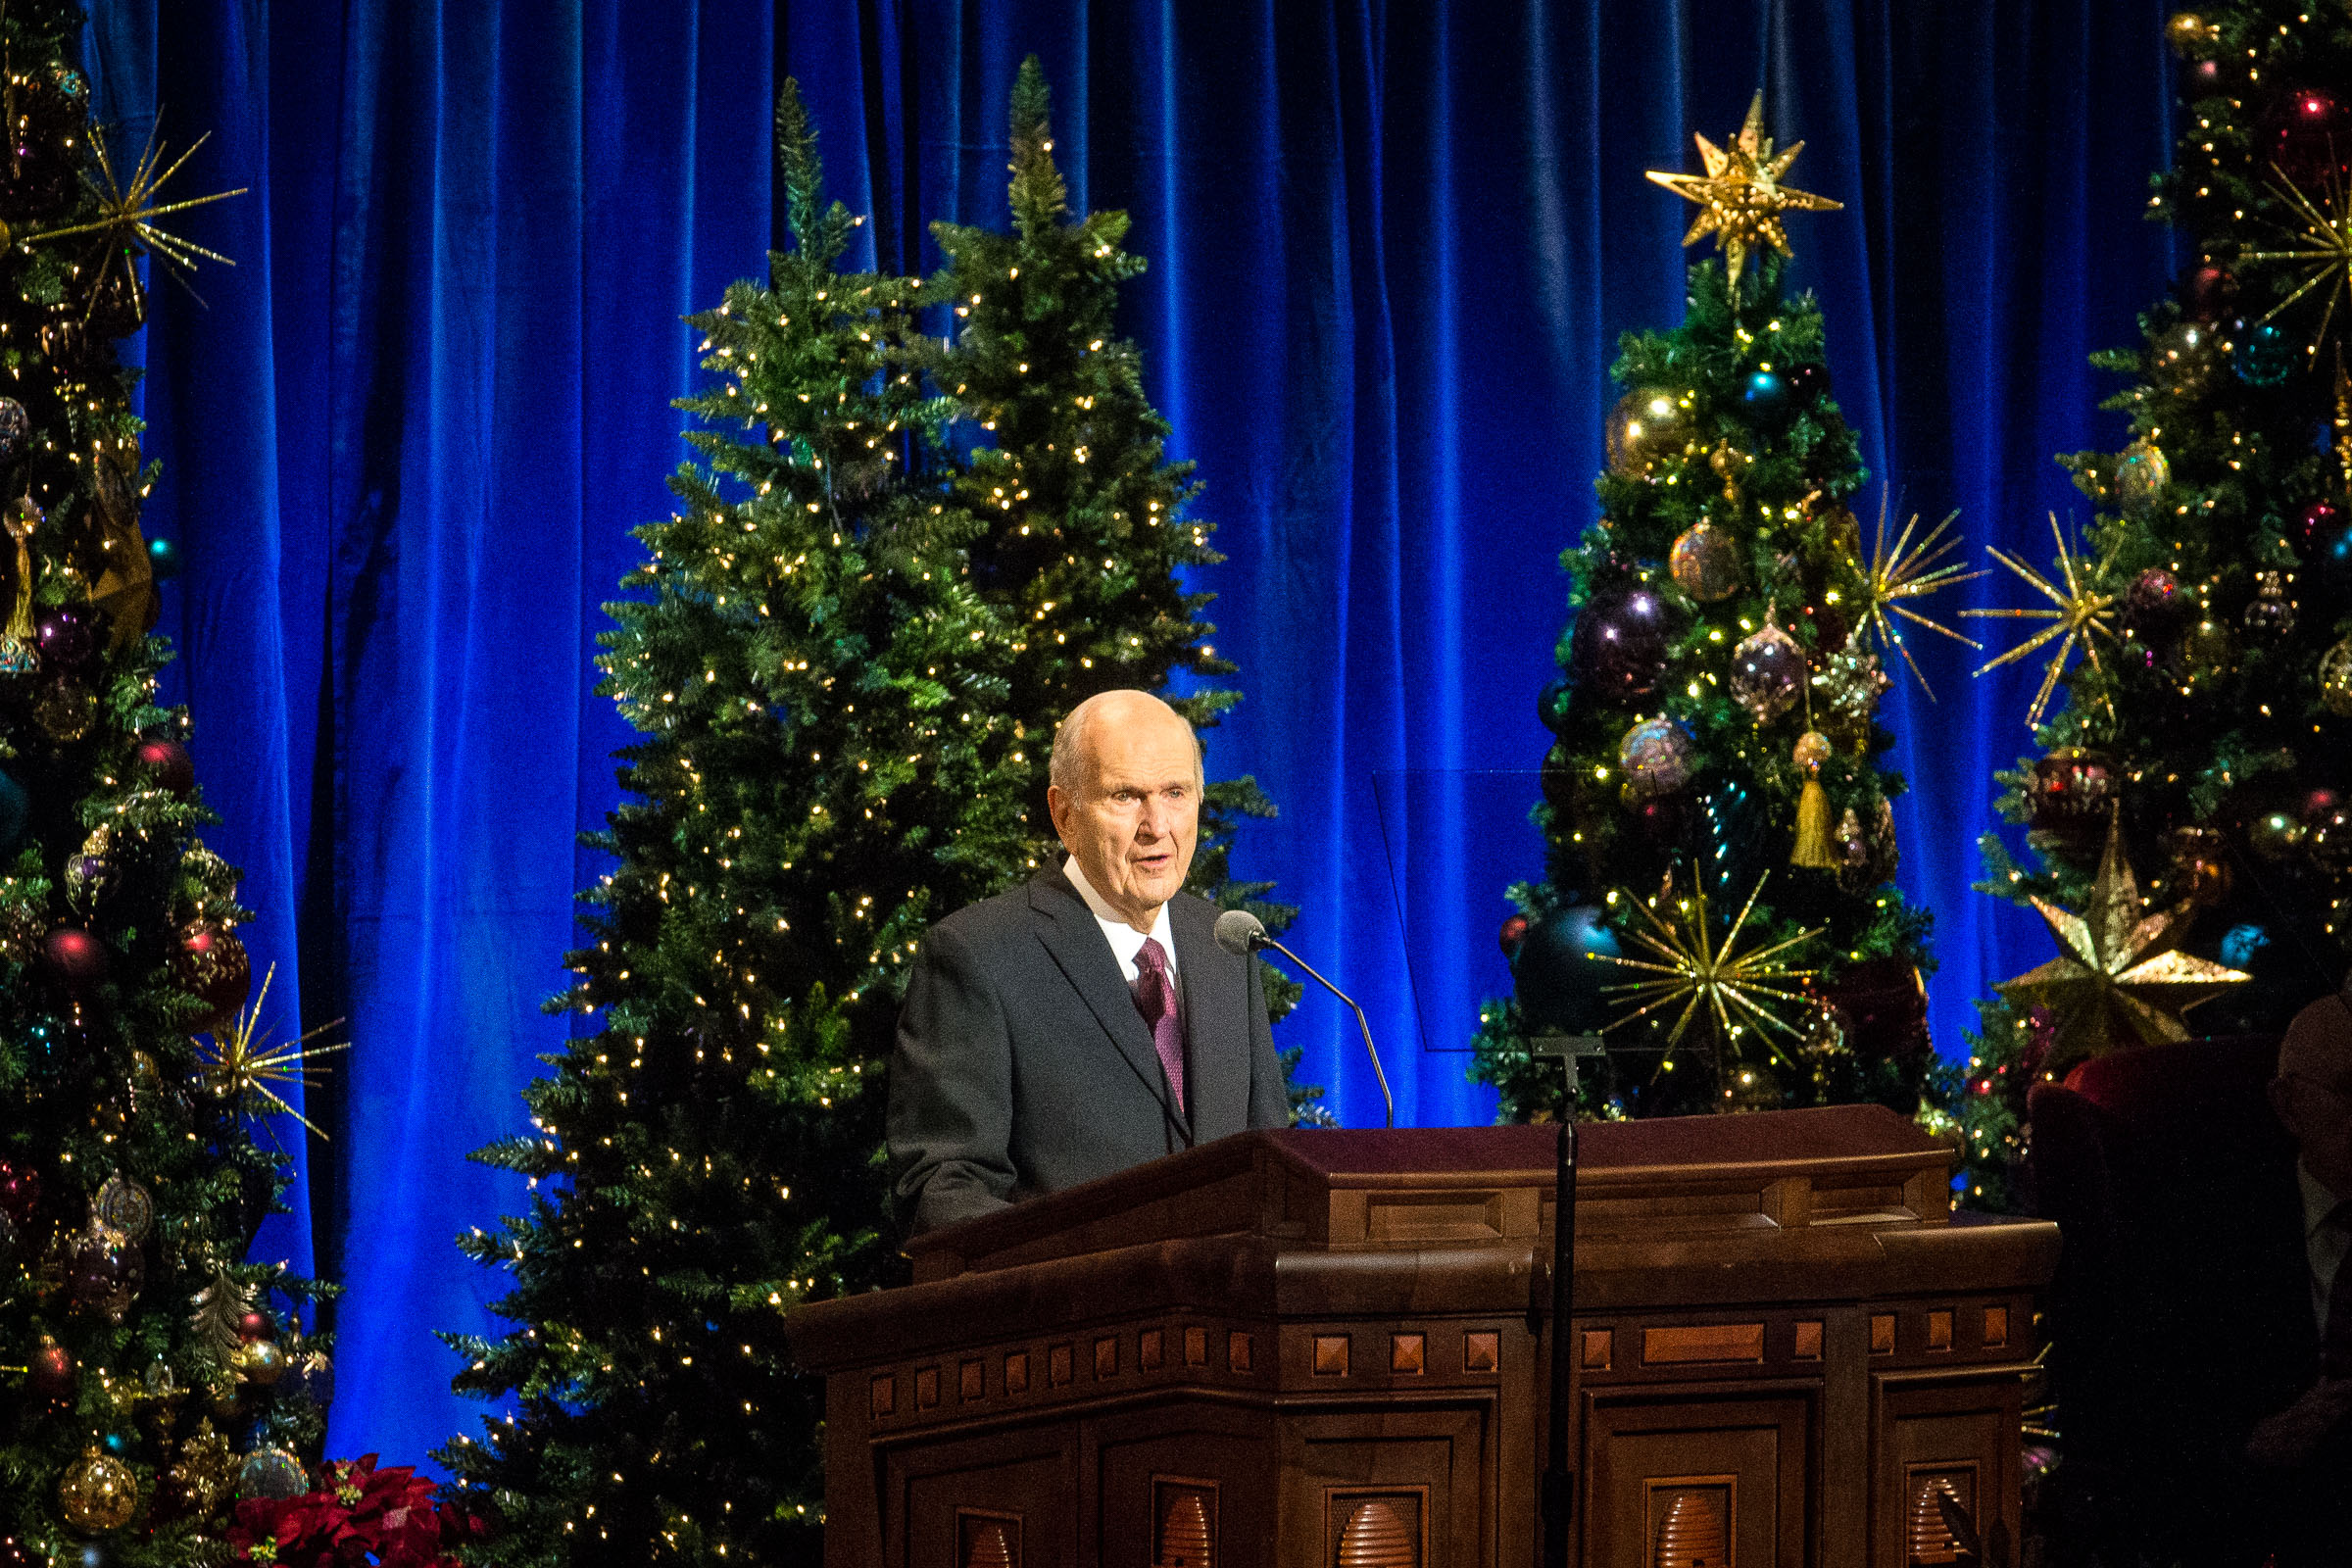 President Russell M. Nelson speaks during the First Presidency's Christmas Devotional in the Conference Center in Salt Lake City on Sunday, Dec. 2, 2018.